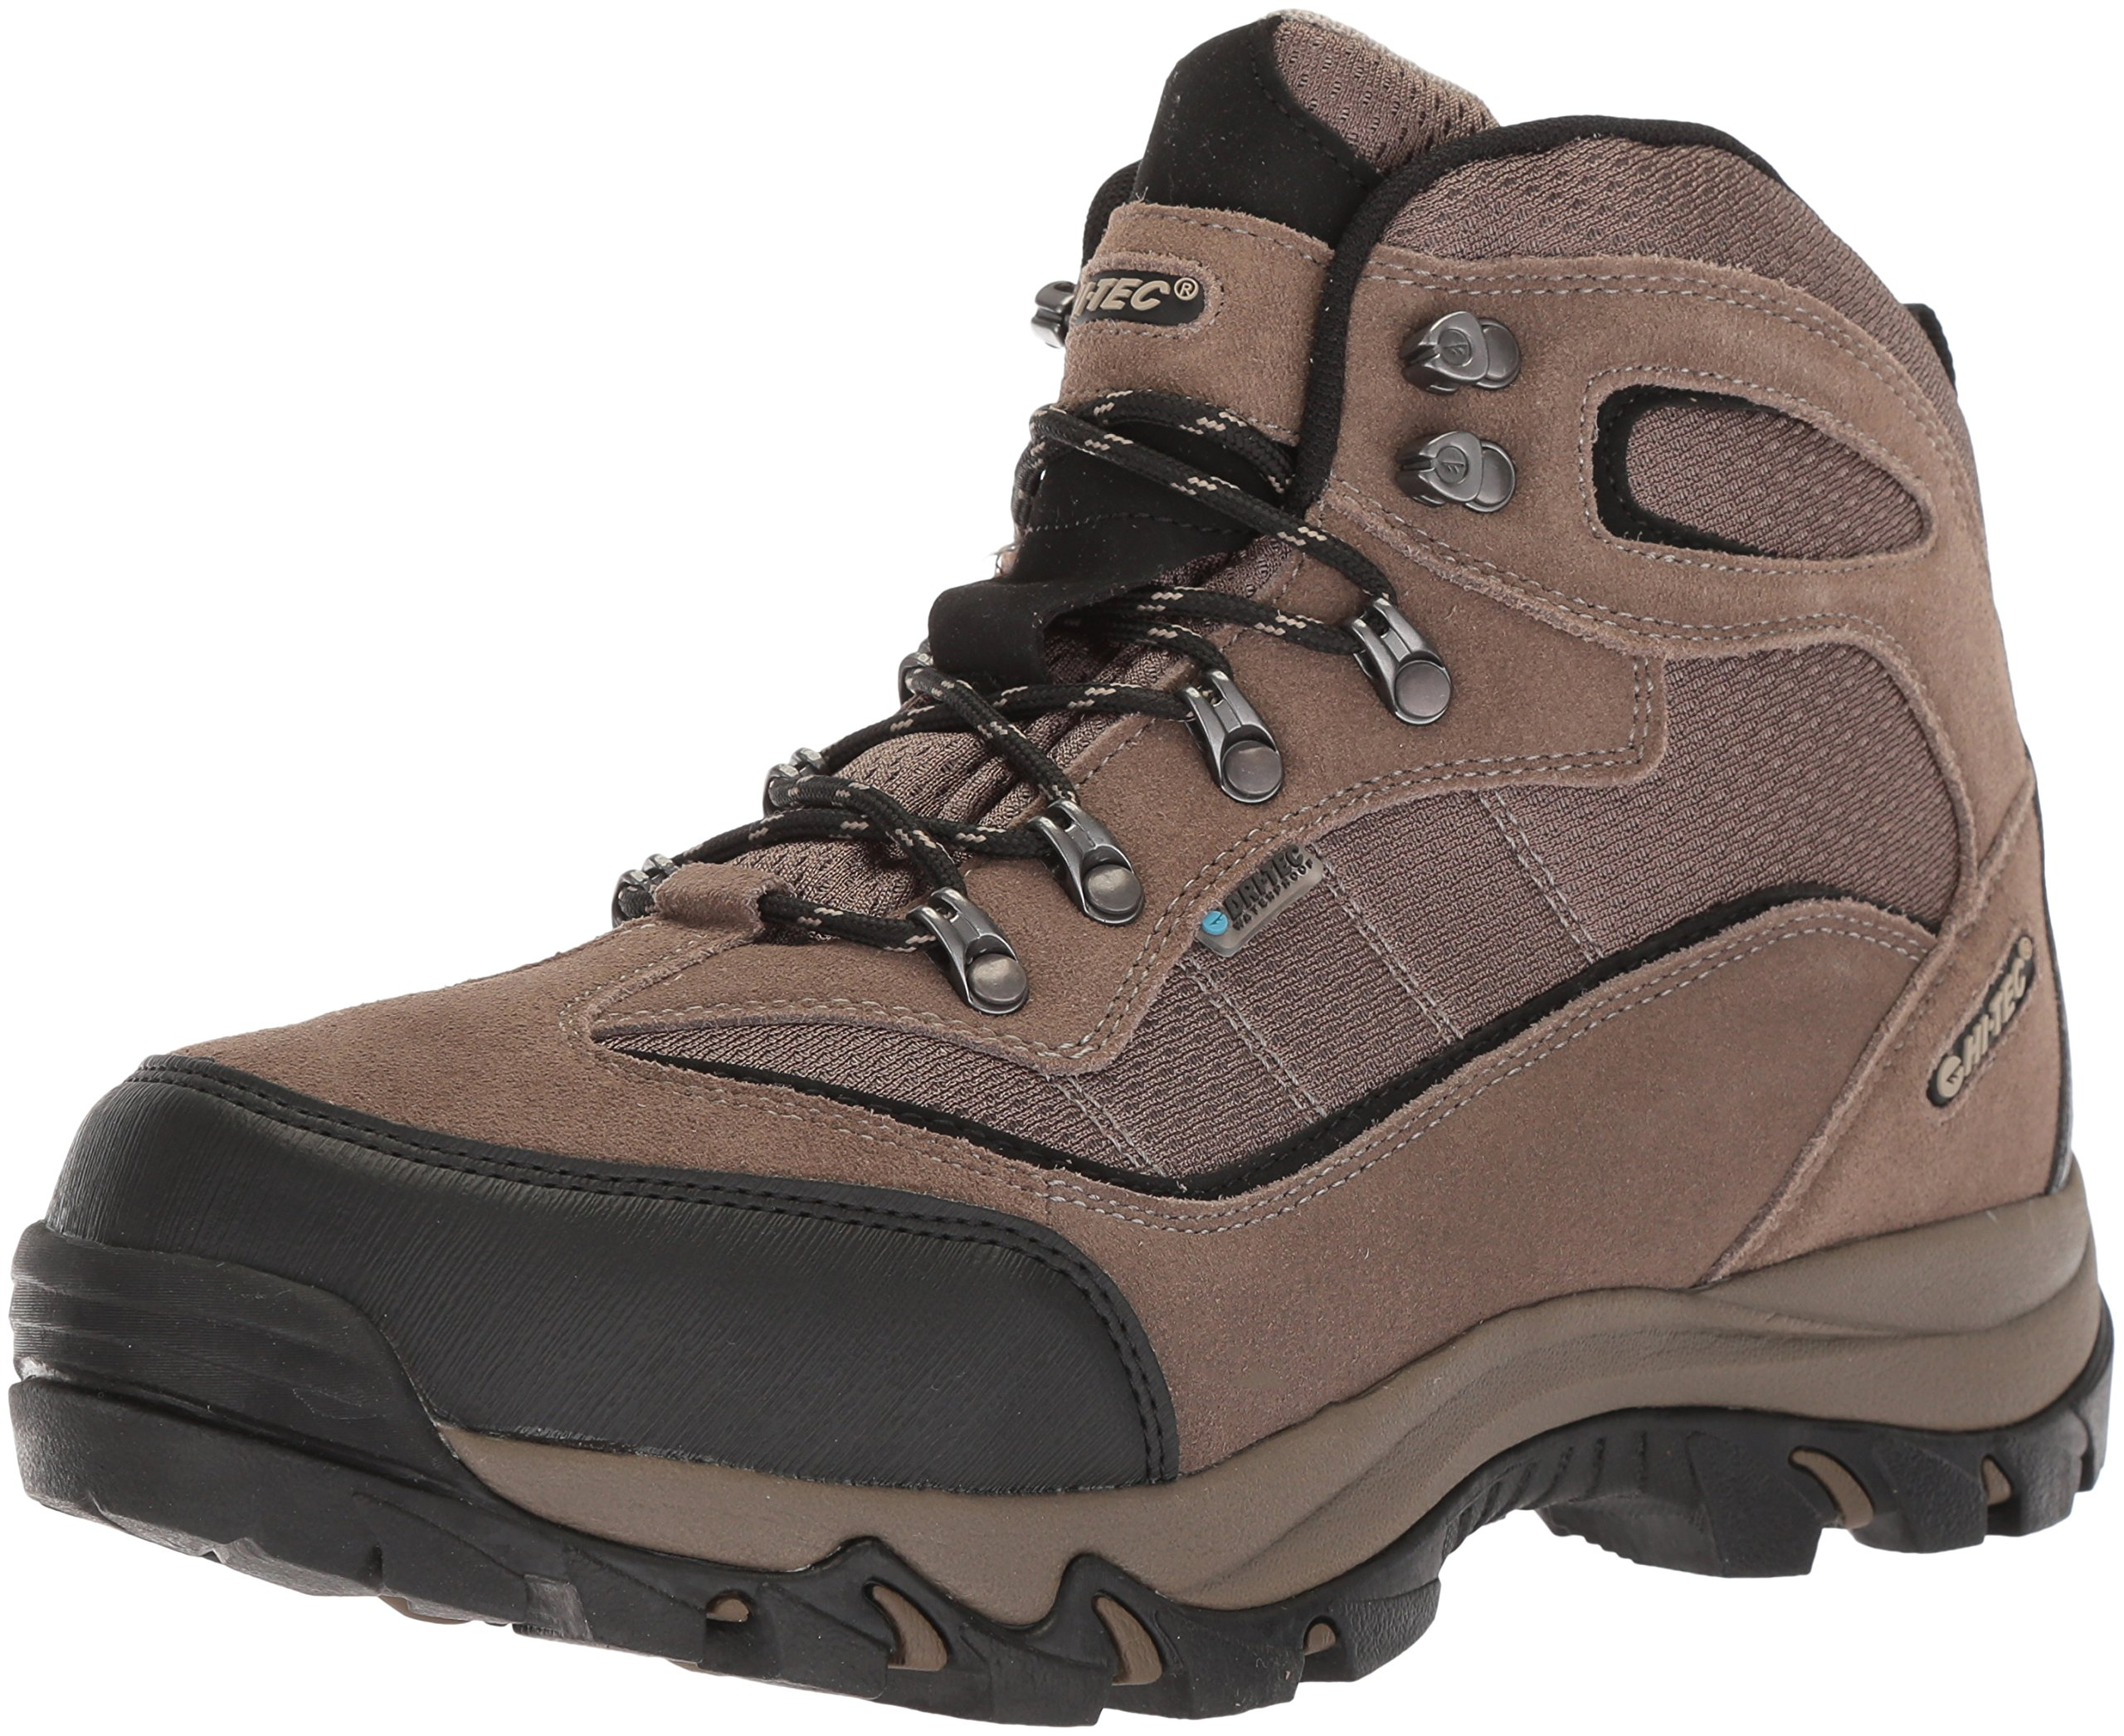 Hi-Tec Men's New 2018 Skamania Mid Waterproof Hiking Boot, Smokey Brown/Olive/Snow, 10.5 Medium US by Hi-Tec